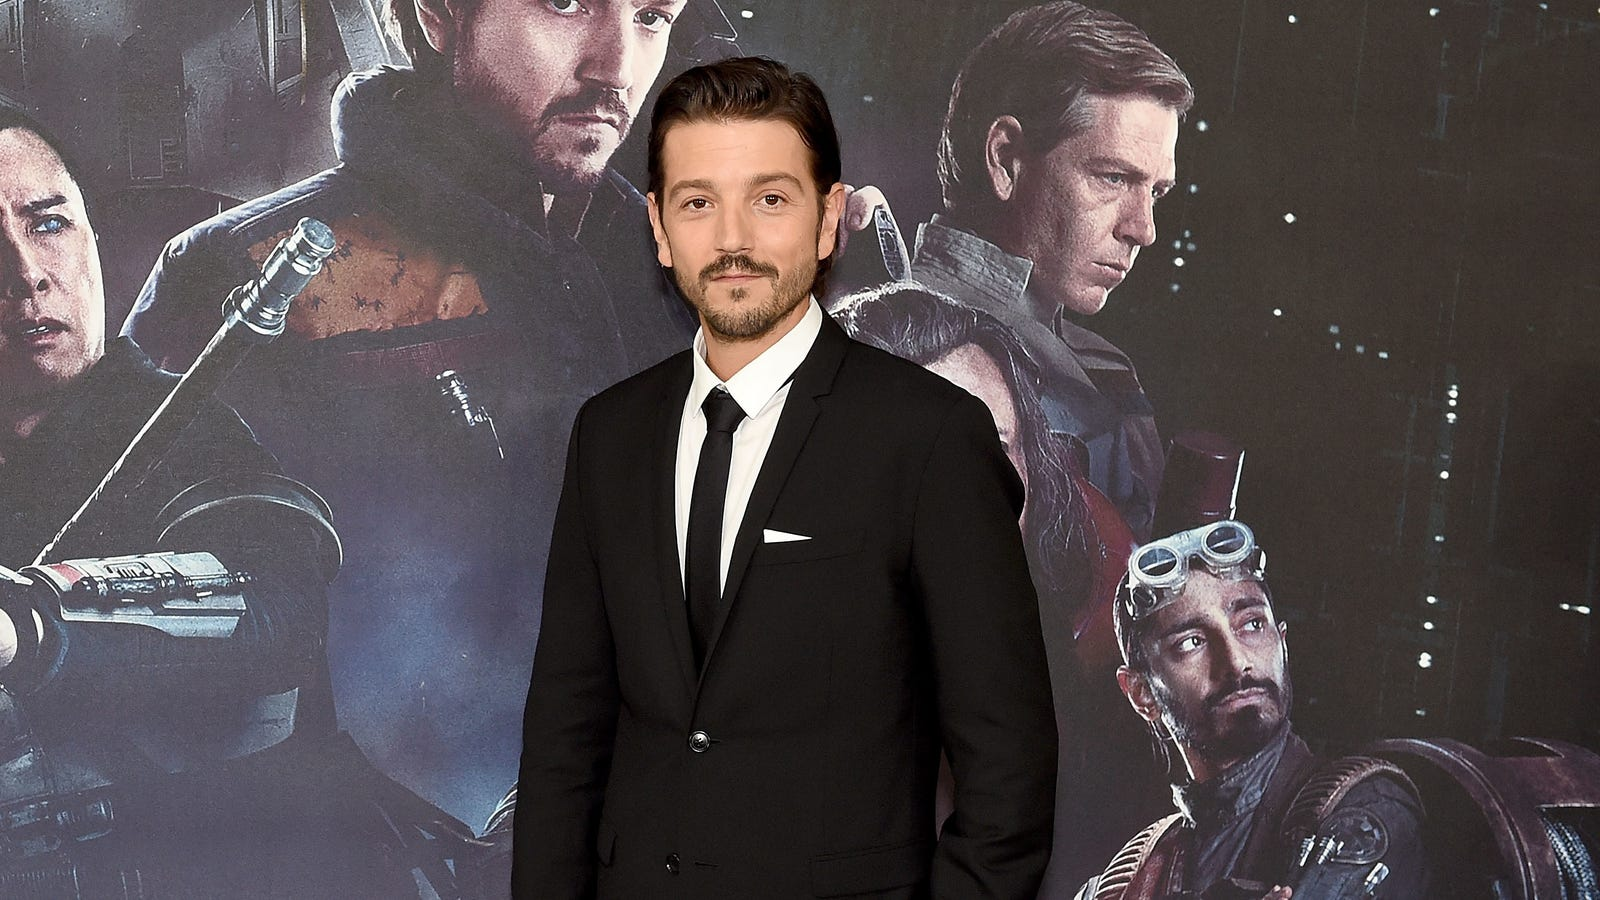 Disney's streaming service is getting a Rogue One prequel with Diego Luna